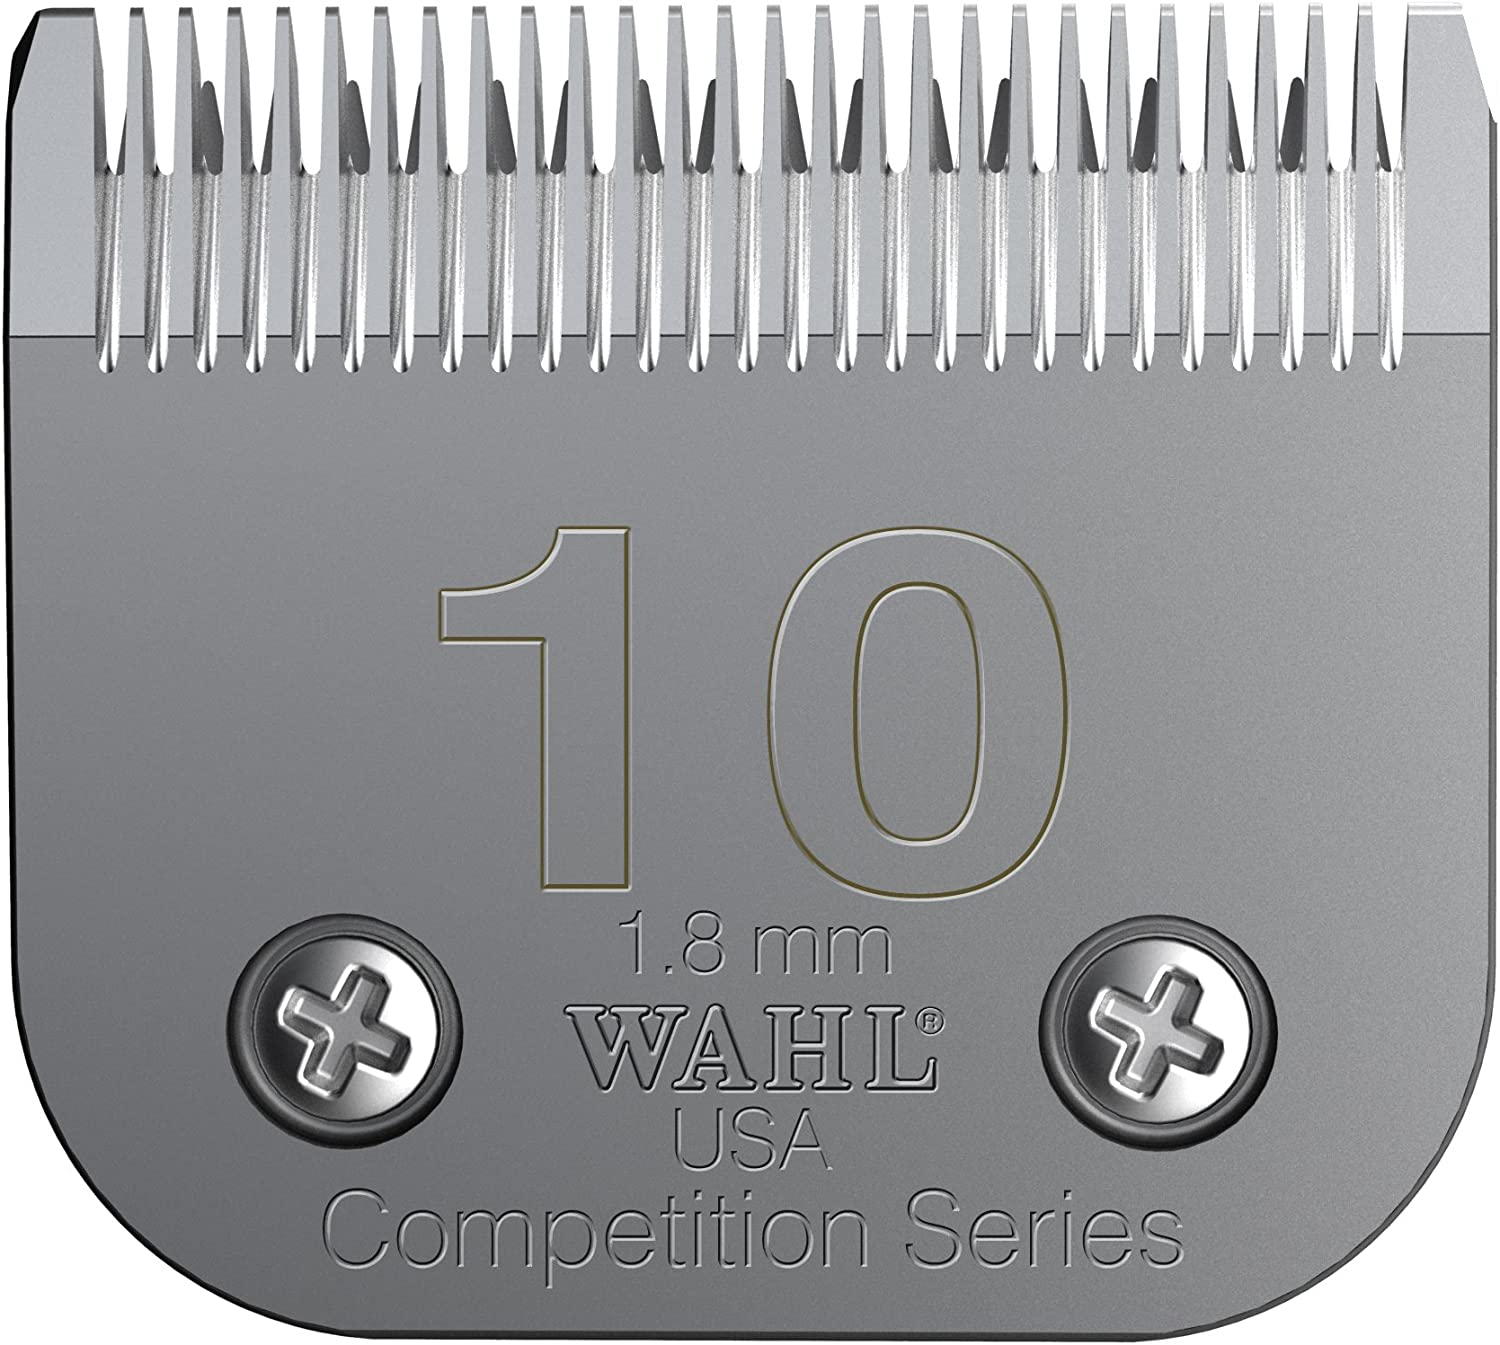 Pet Grooming Clipper Blades : Wahl Professional Animal #10 Medium Competition Series Detachable Blade with 1/16-Inch Cut Length (#2358-100), Steel